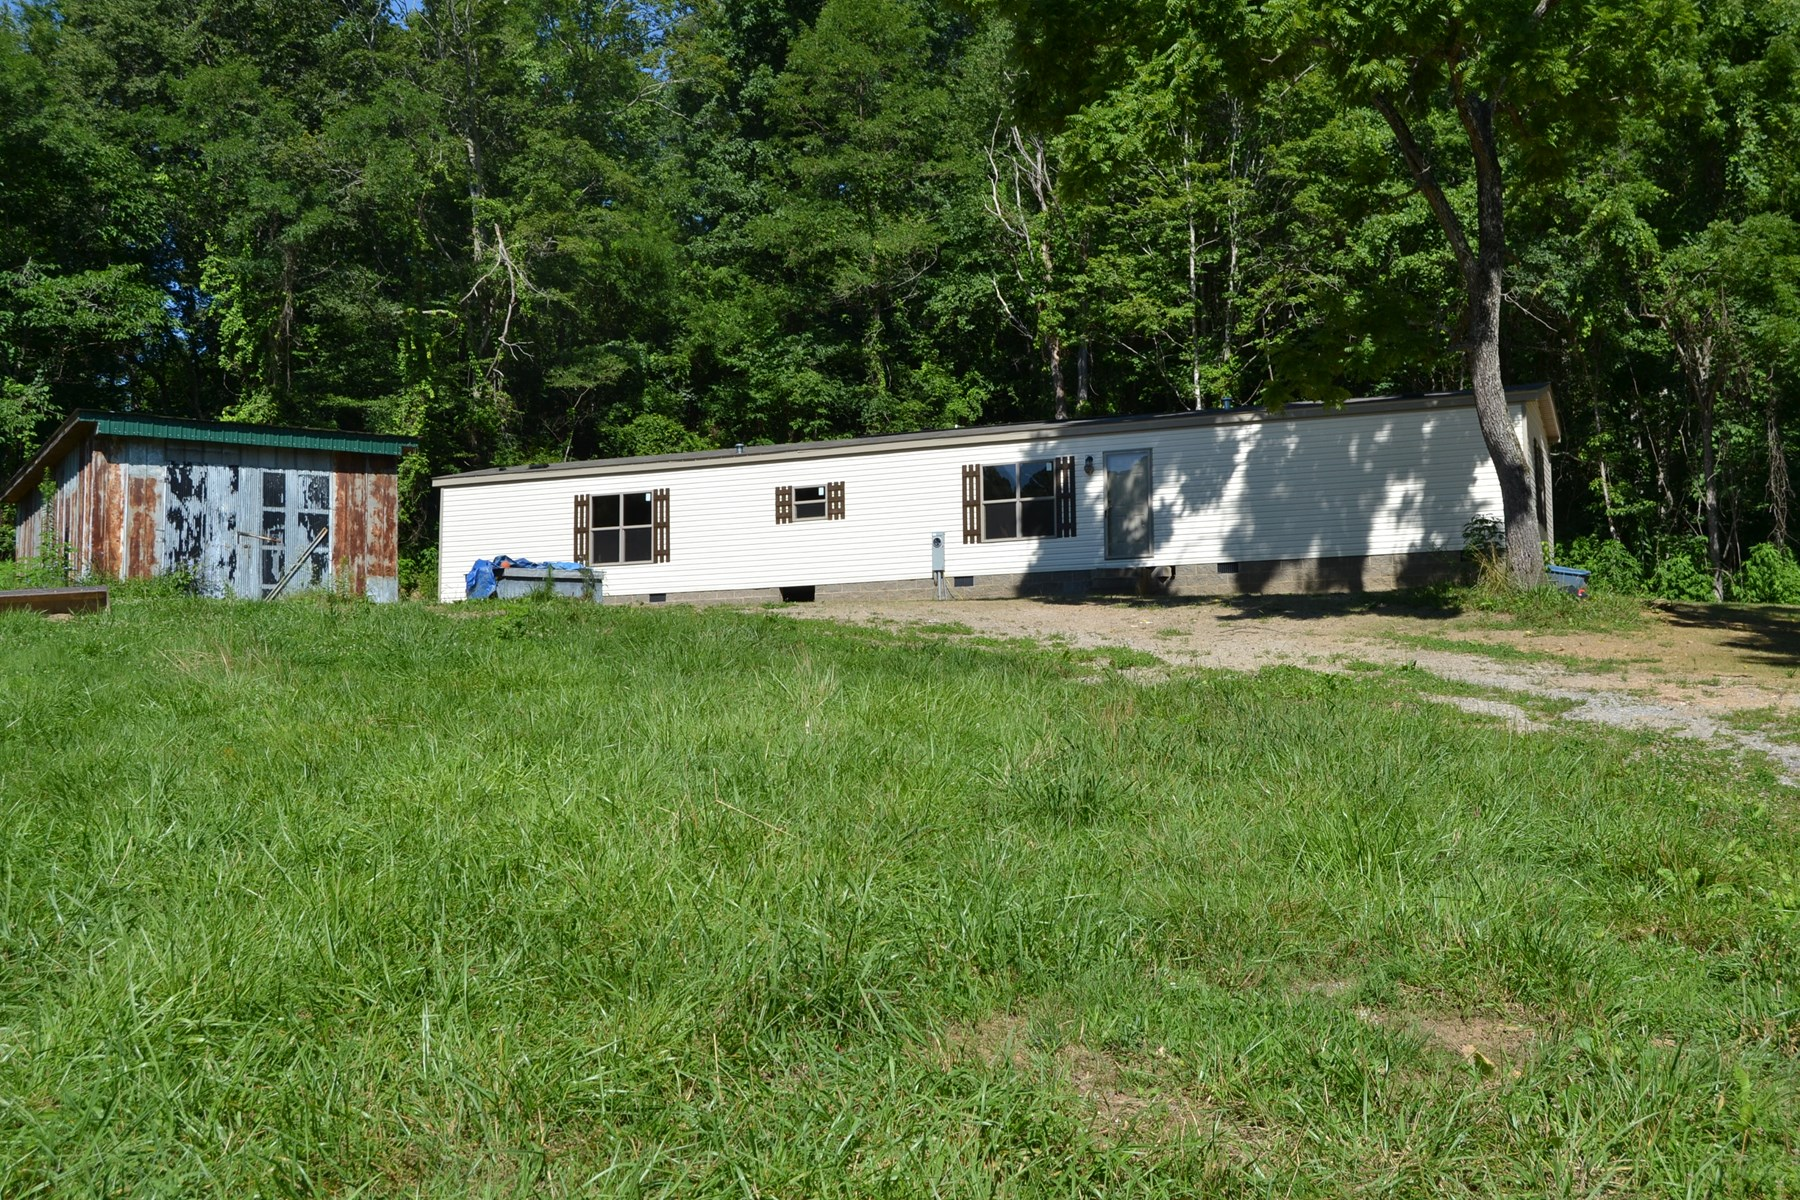 New Home and Acreage For Sale in Claiborne CO TN